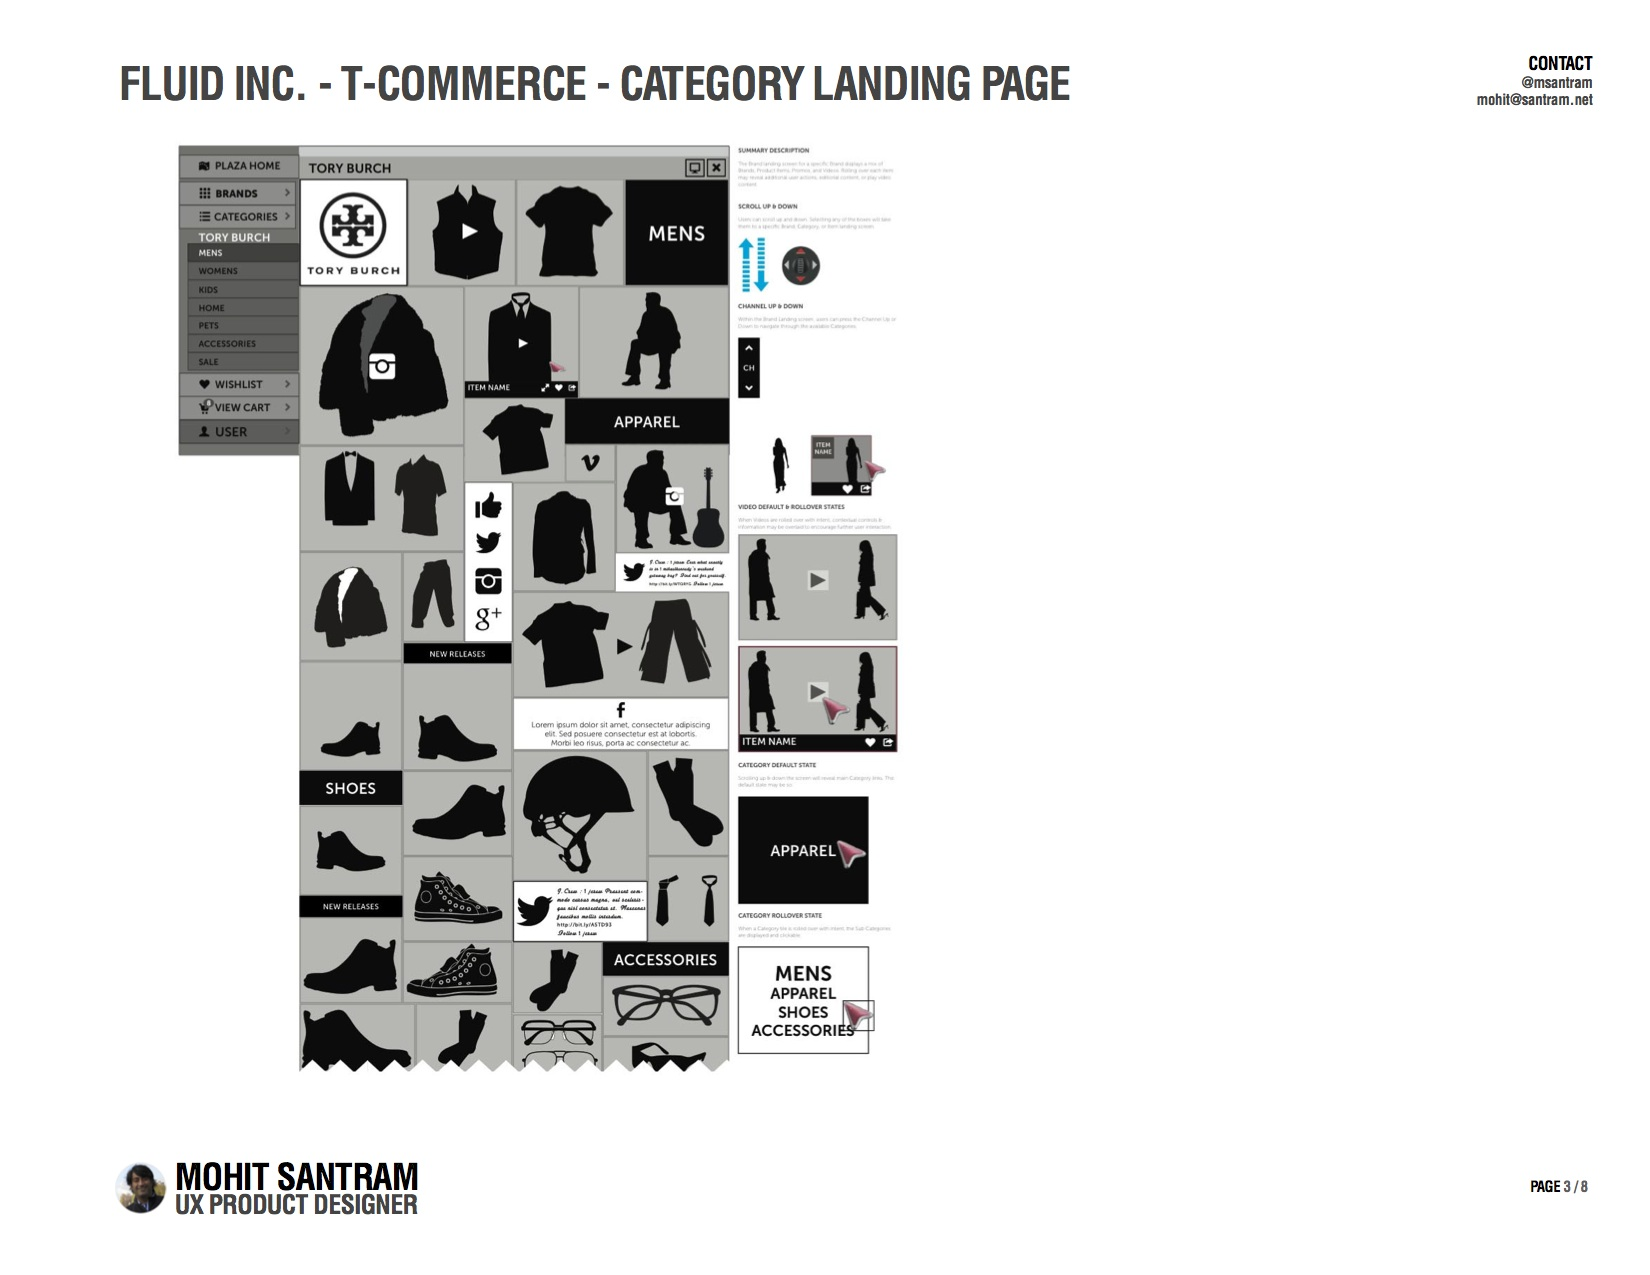 T-Commerce Category Landing Page